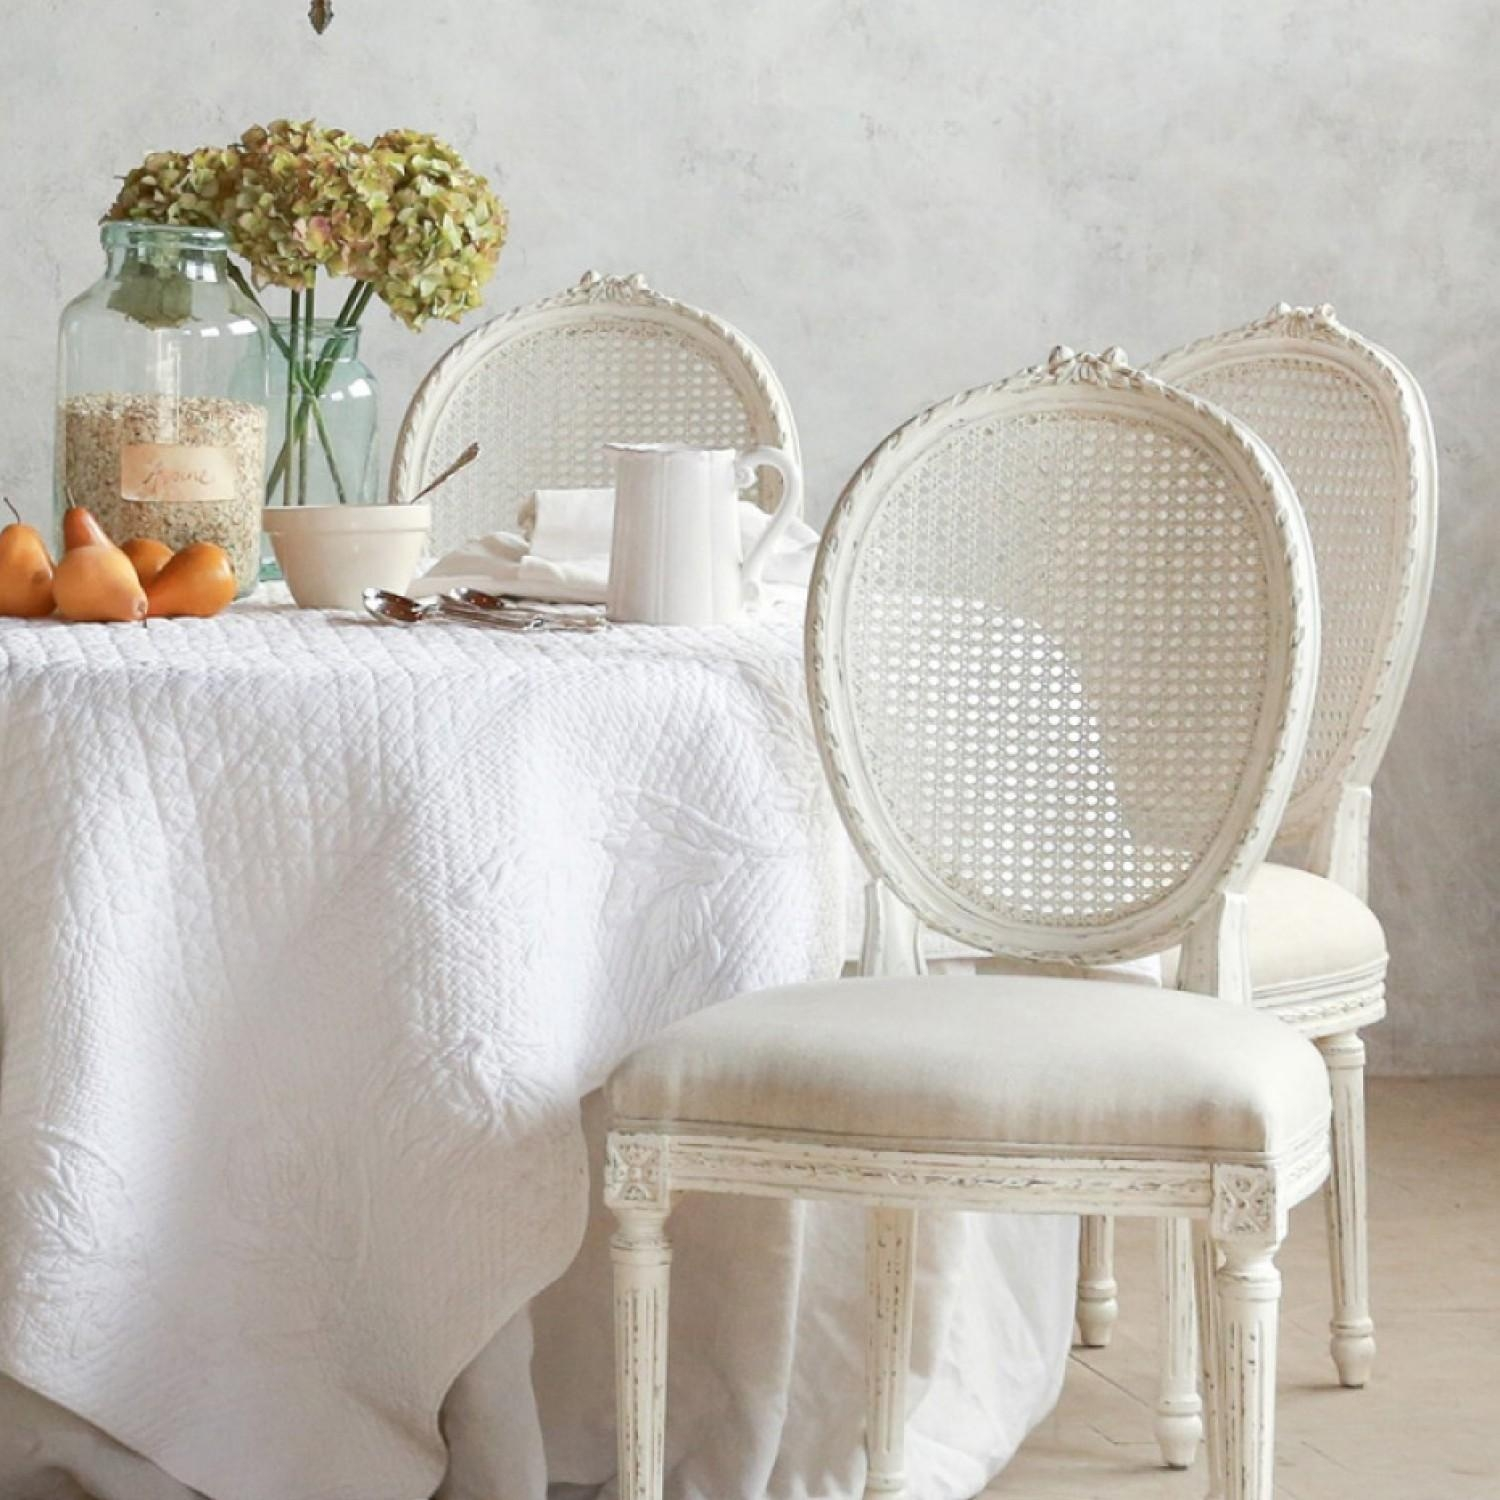 Dining Chairs : Cool Cane Dining Chairs Elegant Set Of Six Wicker Inside White Cane Sofas (Image 7 of 25)